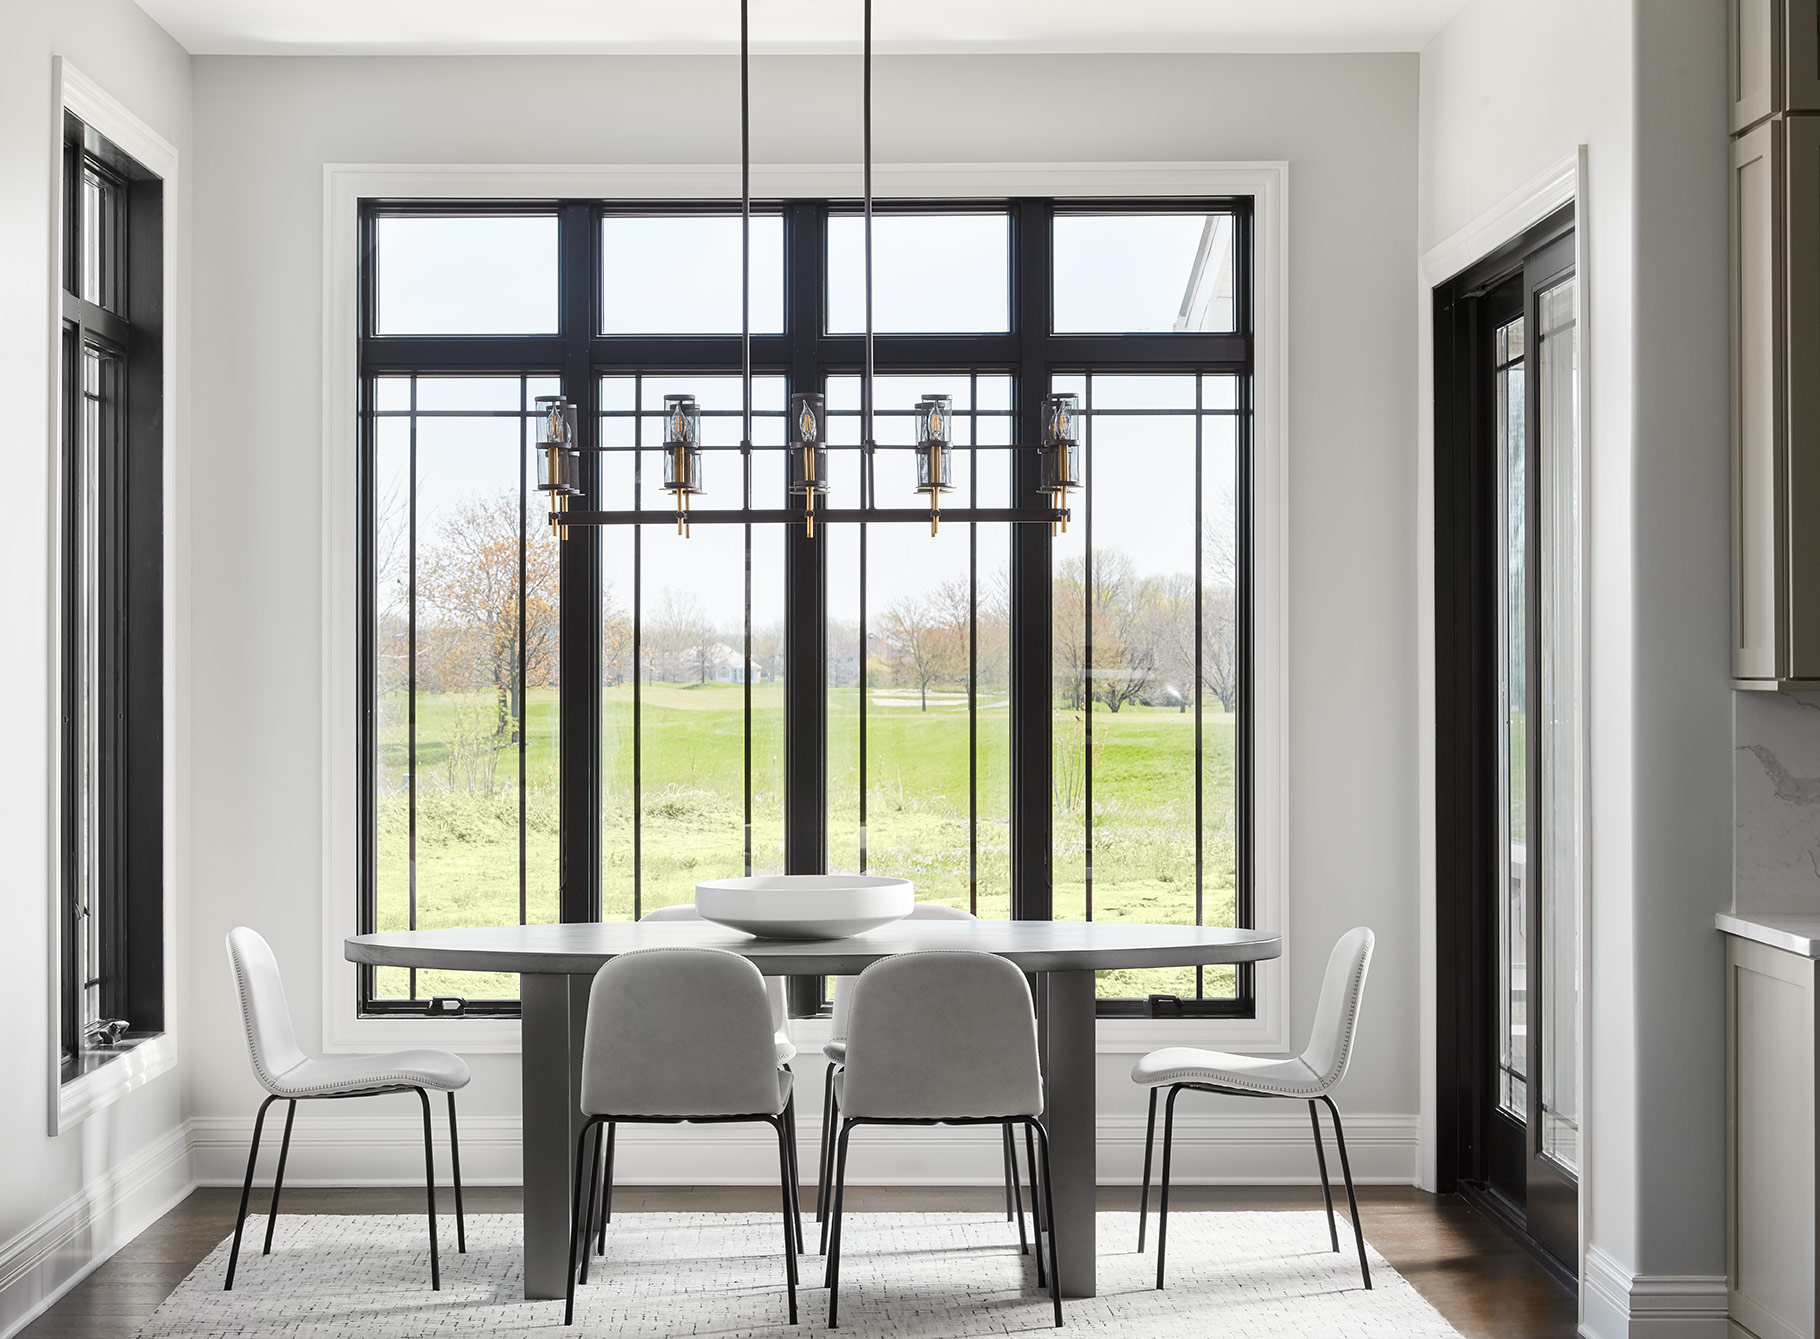 Directly adjacent to the kitchen, the family has a sun-drenched breakfast area overlooking fields and trees behind the house. We kept furnishings simple here to really let the windows and view be the show stopper.